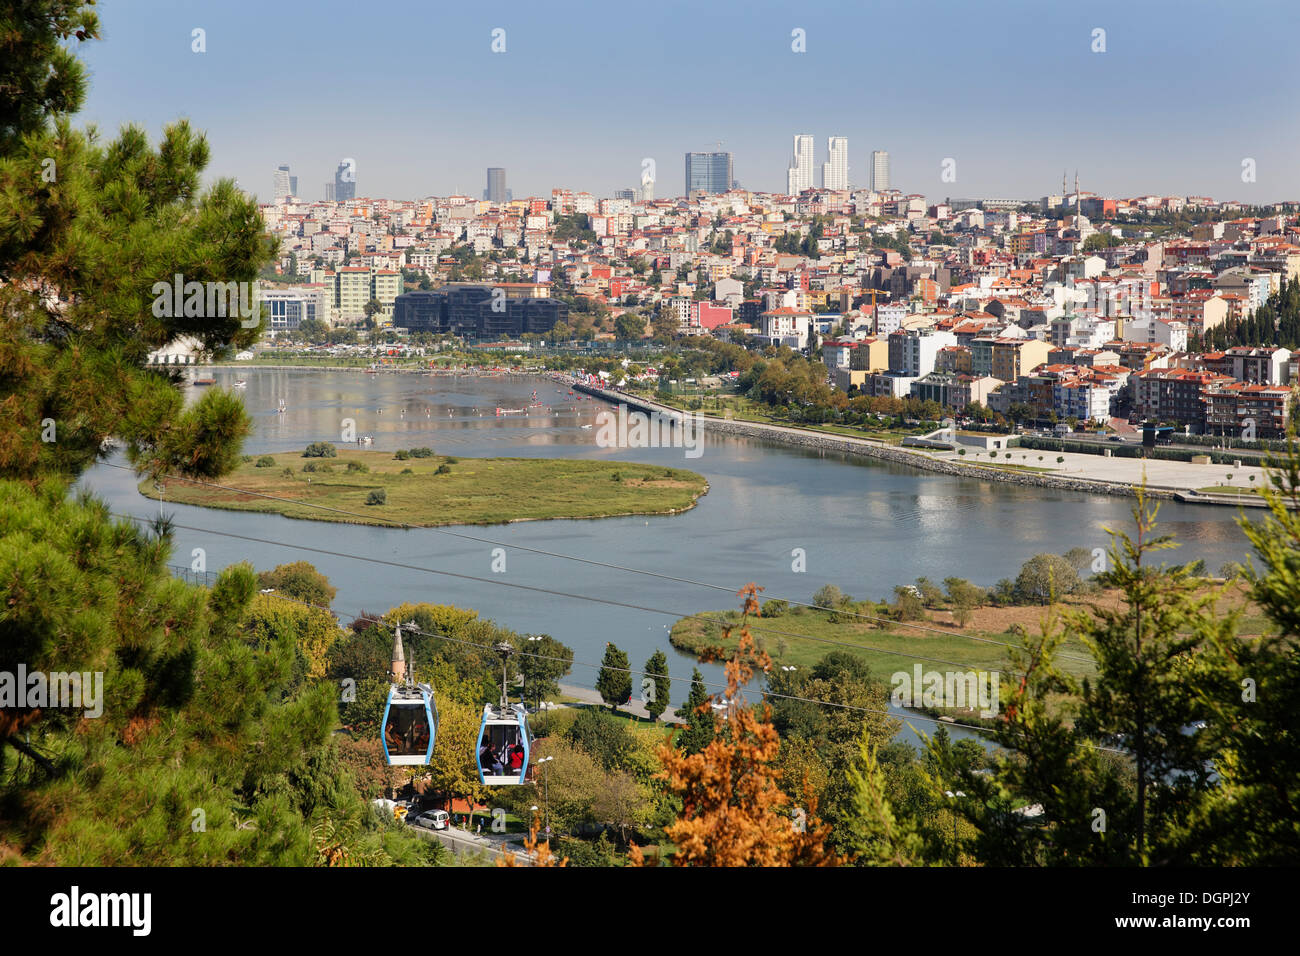 Cable car to Piyer Loti, view from Pierre Loti Hill across the Golden Horn to Sisli, Pierre-Loti-Hügel, Eyüp, Istanbul - Stock Image